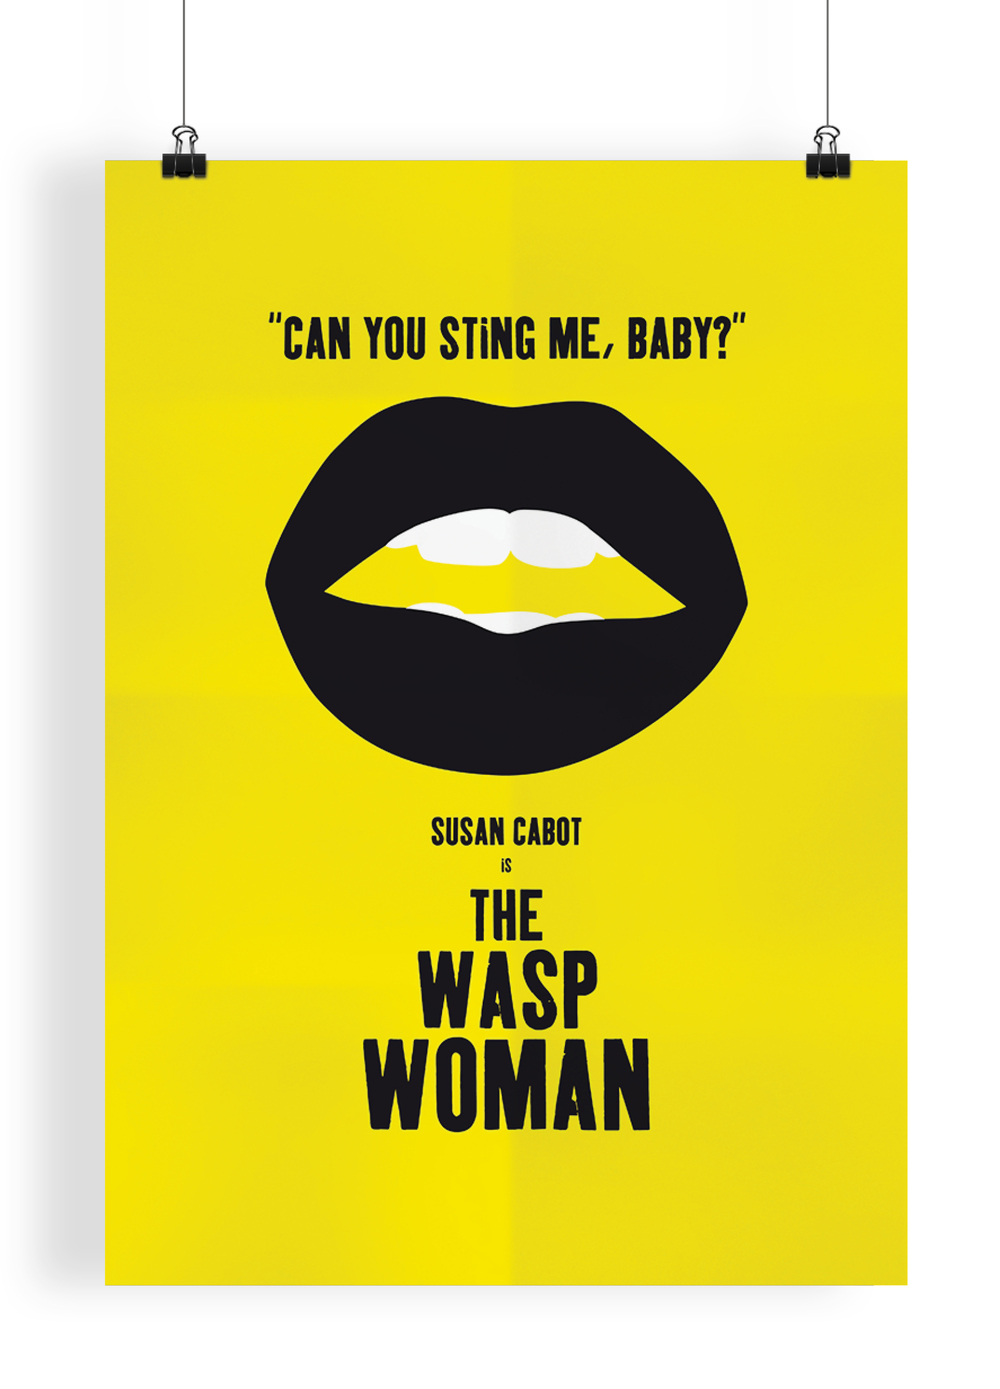 The Wasp Woman   Movie poster based on the 1956 B-movie 'The Wasp Woman'. Inspired by the Polish film posters of the 60s, 70s and 80s where the artist would not have seen the film and just have to work from a brief synopsis of the film.